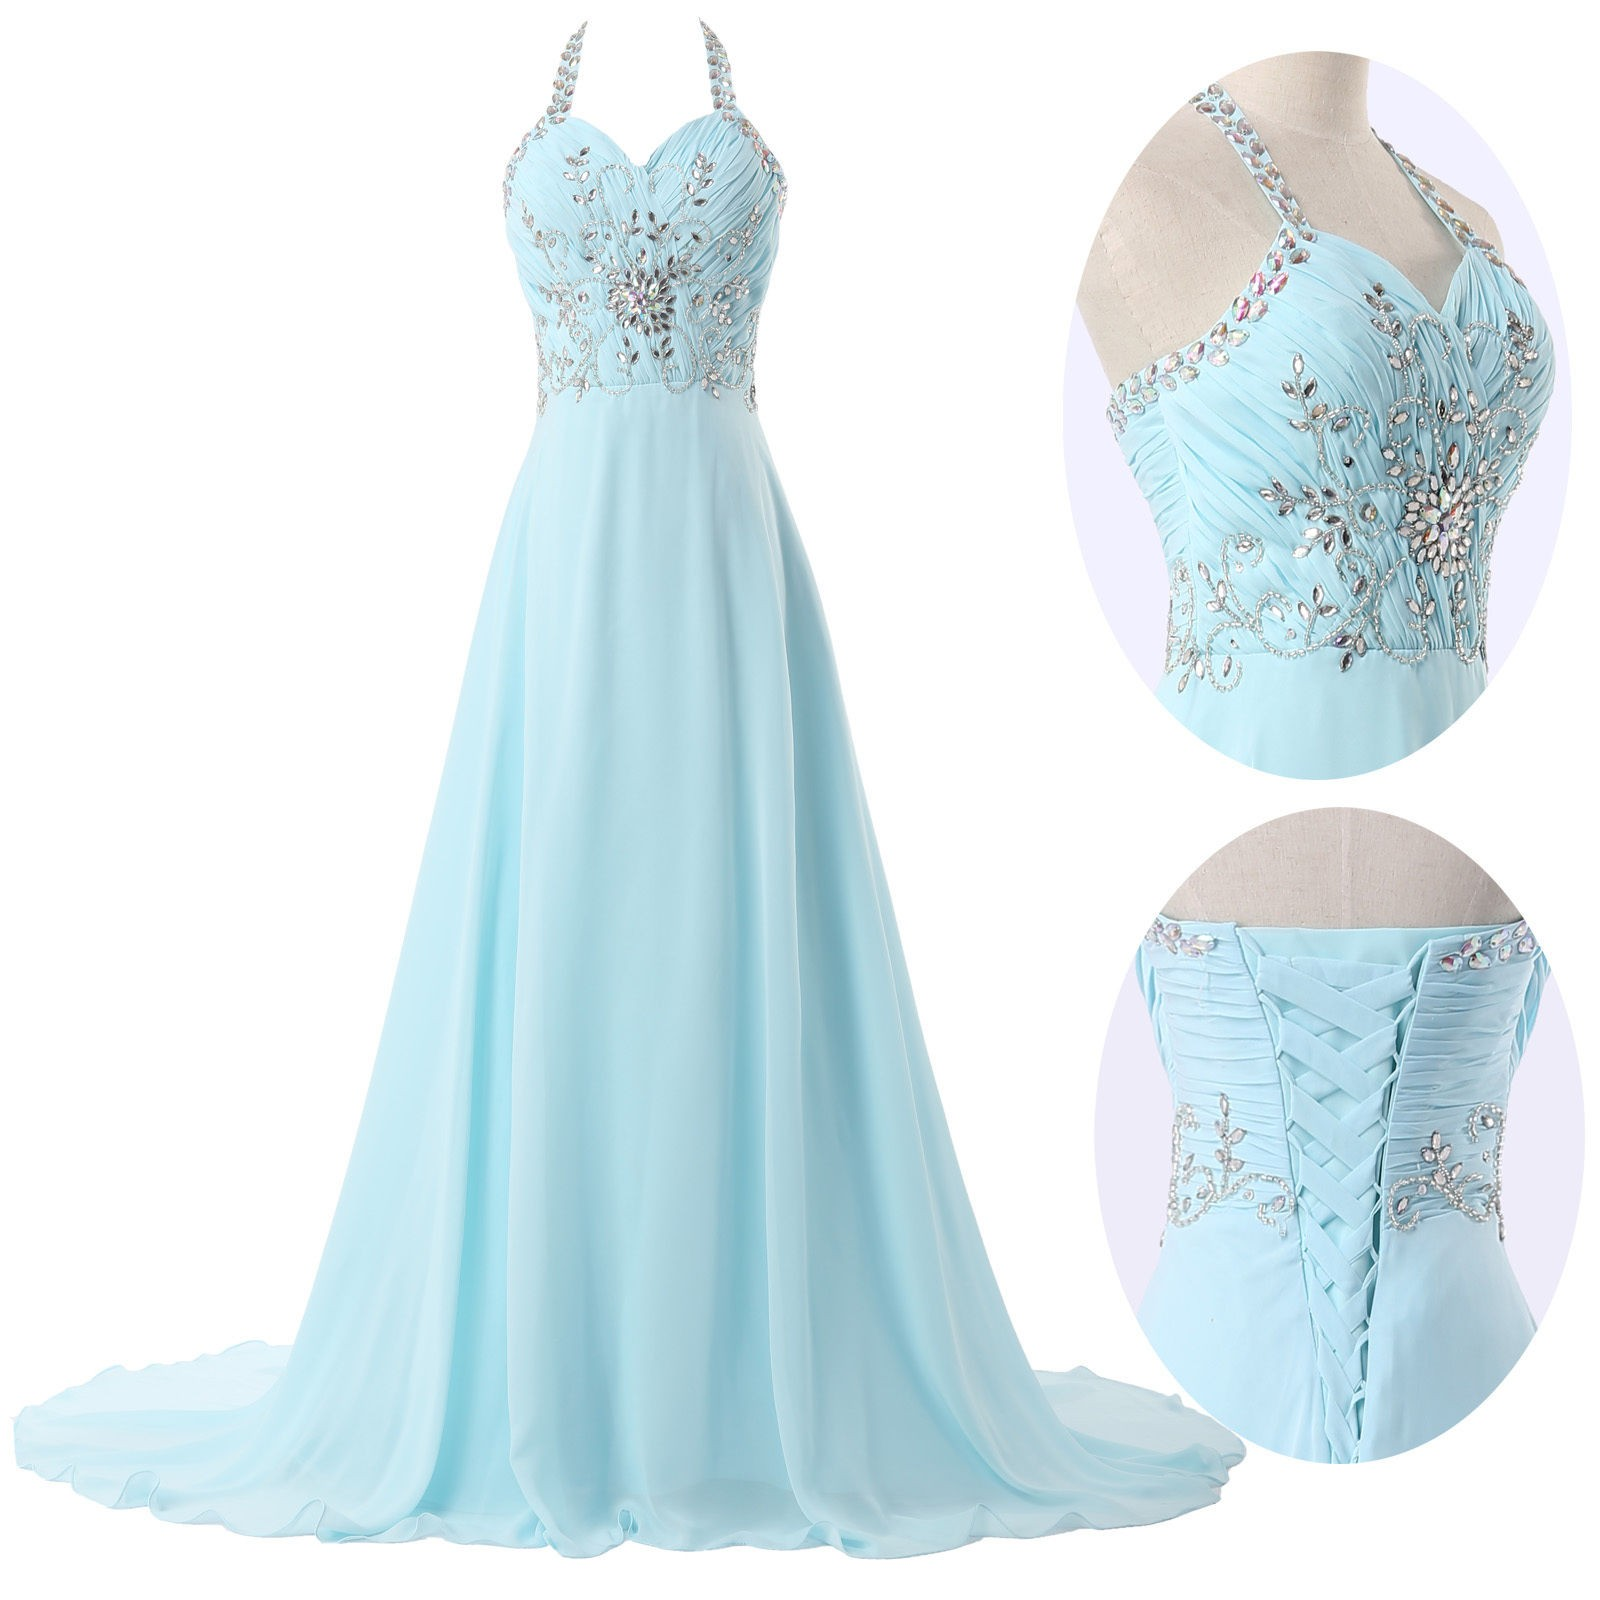 Elegant A-Line Halter Sweep Train Chiffon Sky Blue Prom Dress With Beading